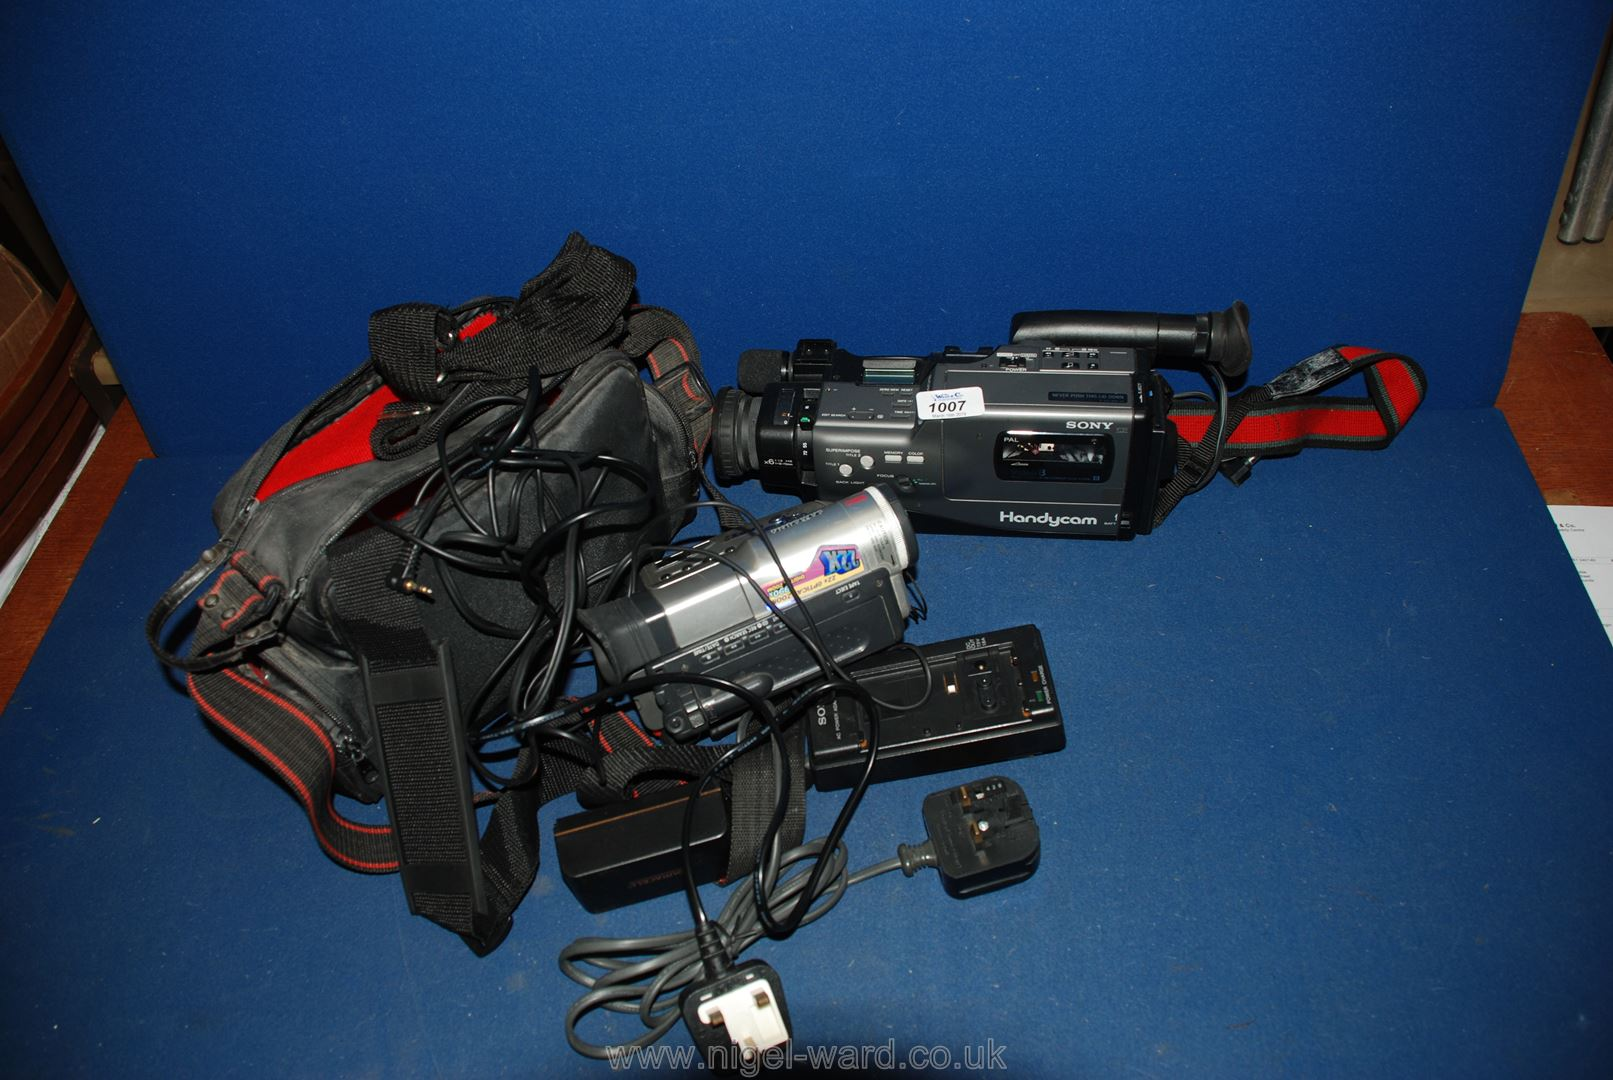 Lot 1007 - A Sony handycam Video 8 Camera with case, battery and charger.